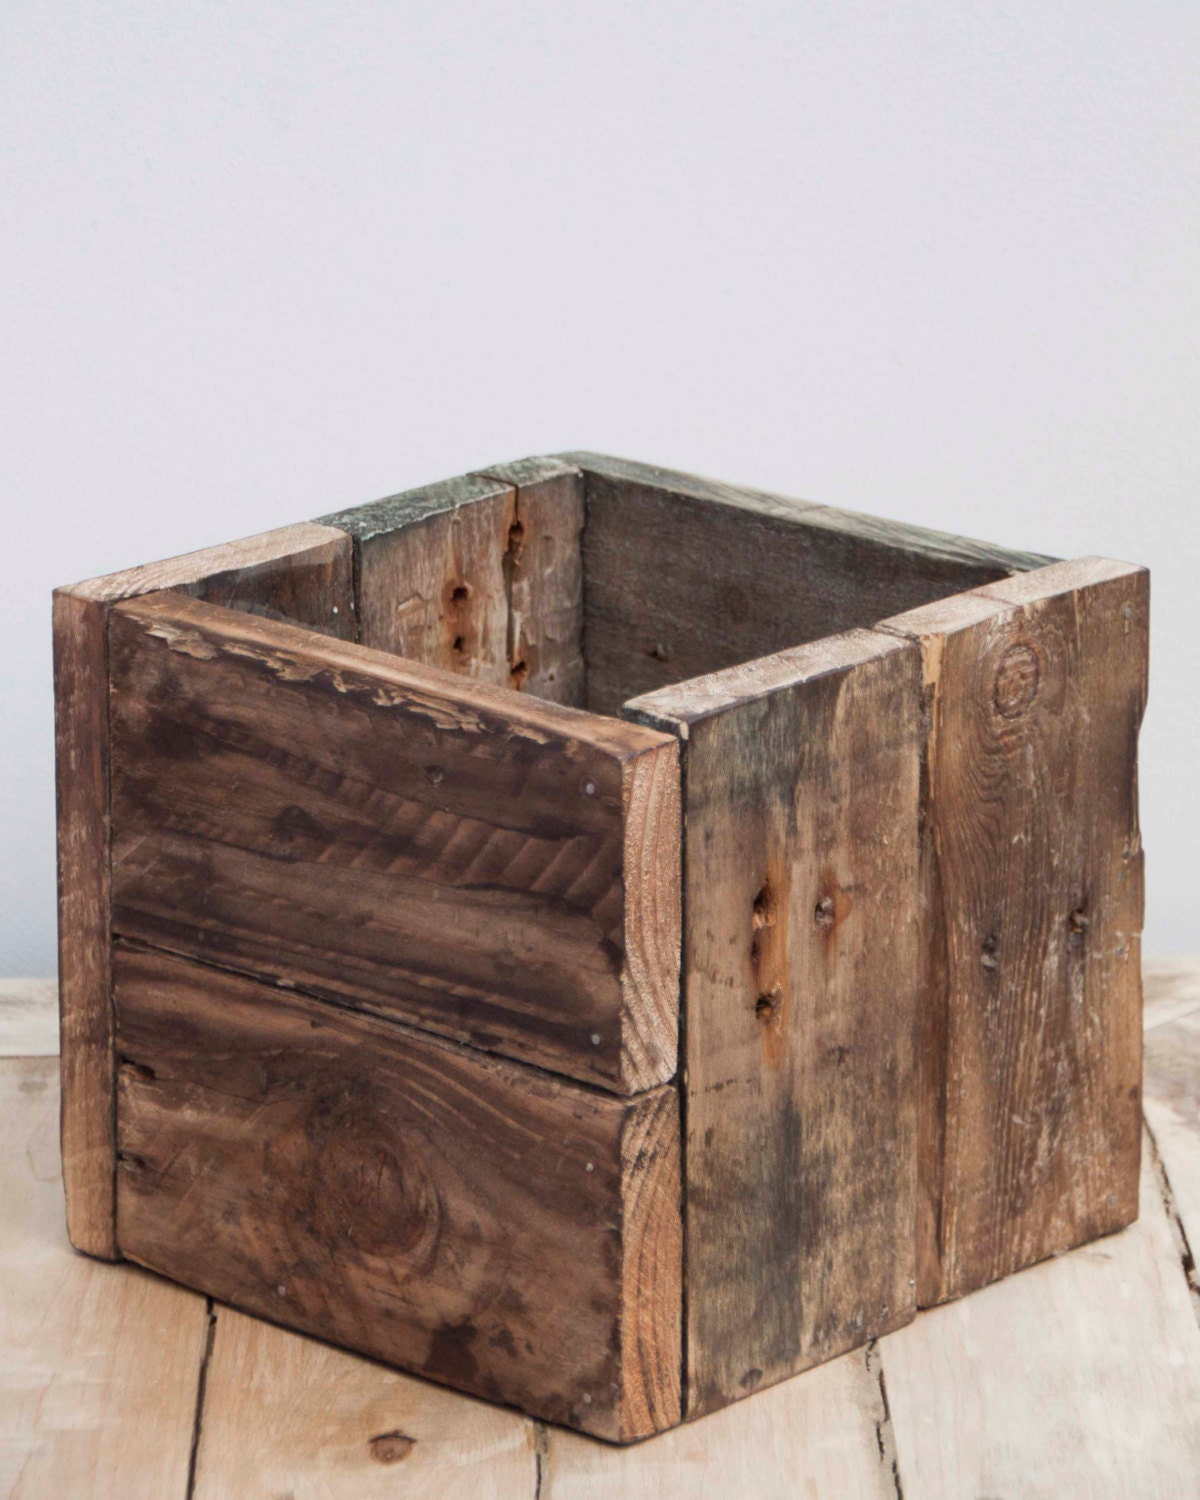 The Half Crate is a very versatile wooden The Half Crate is a very versatile wooden crate. The low profile makes it a great storage option for canned goods or fresh fruits and vegetables in the kitchen or pantry or even used for under the bed storage to make the most of your space/5().